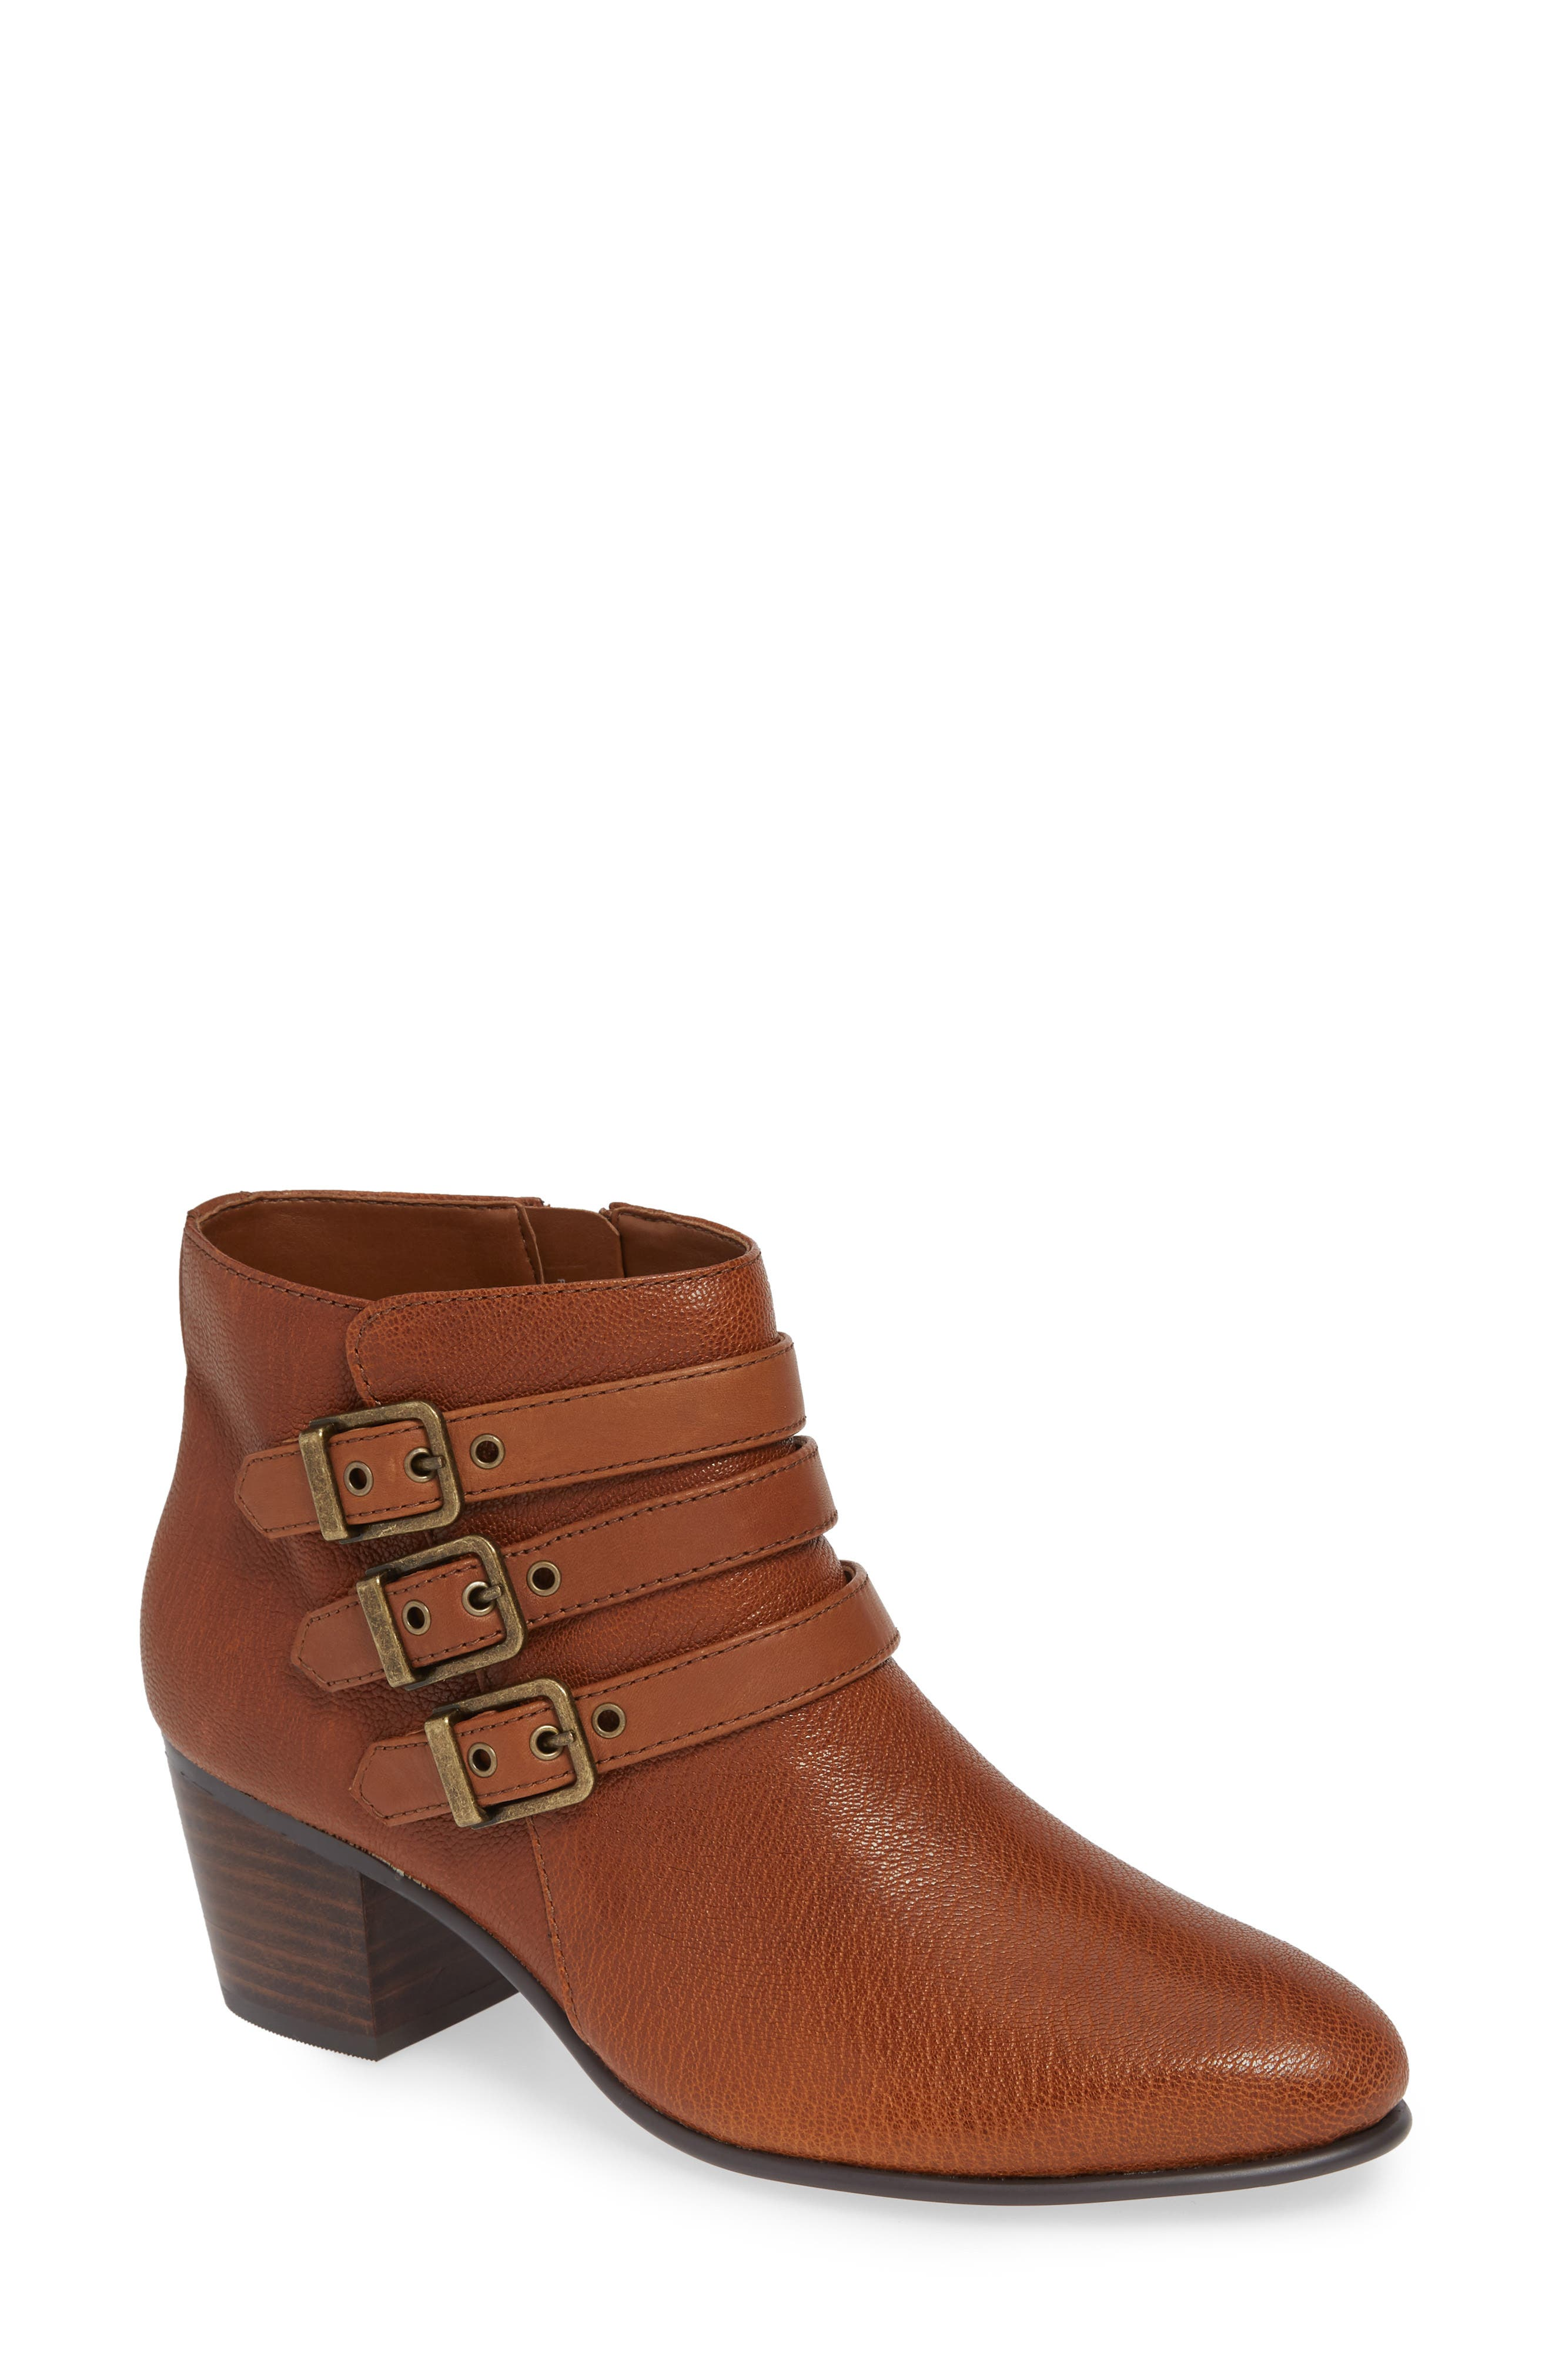 Maypearl Rayna Boot,                             Main thumbnail 1, color,                             DARK TAN LEATHER